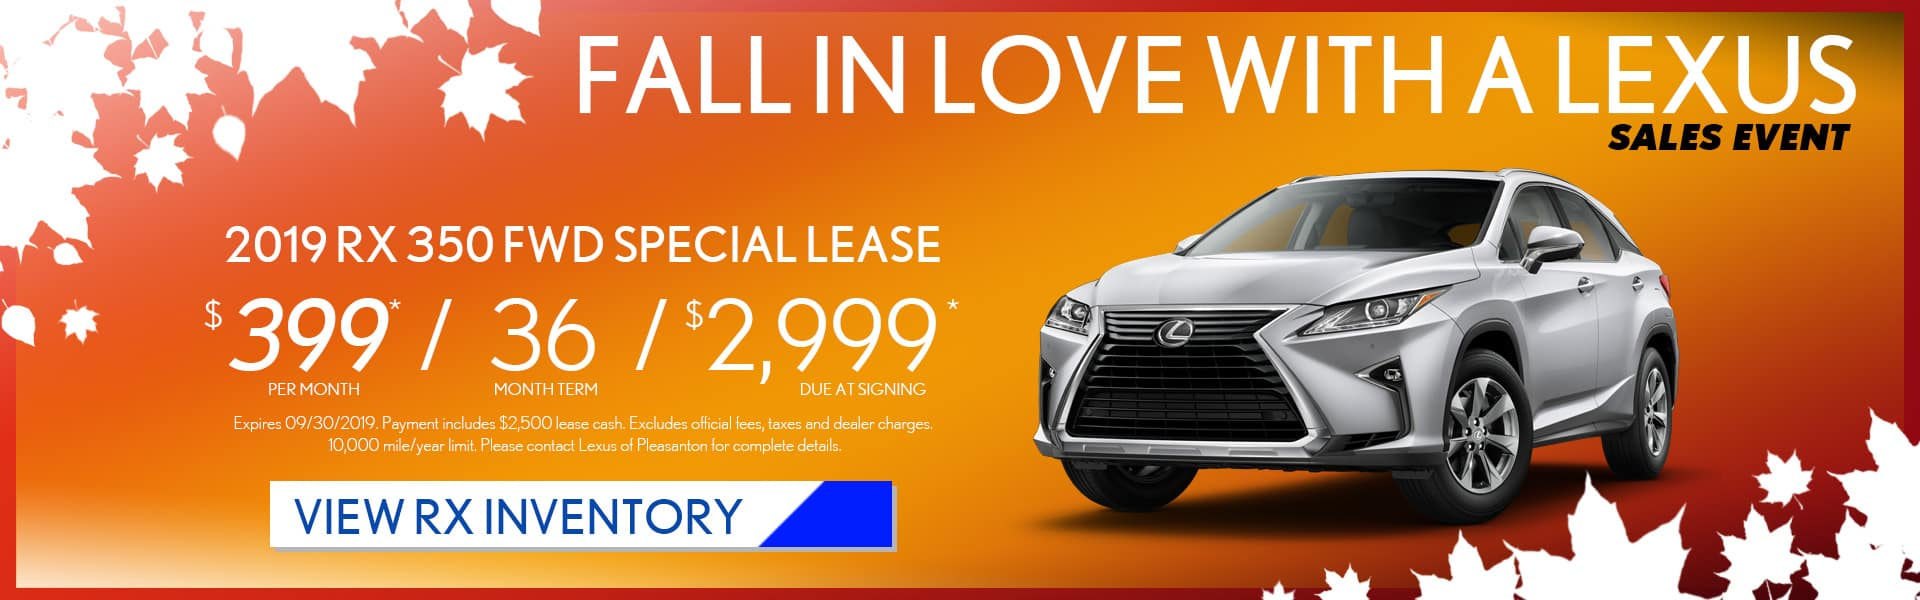 Lexus of Pleasanton | Bay Area Lexus Dealer | Fremont, CA